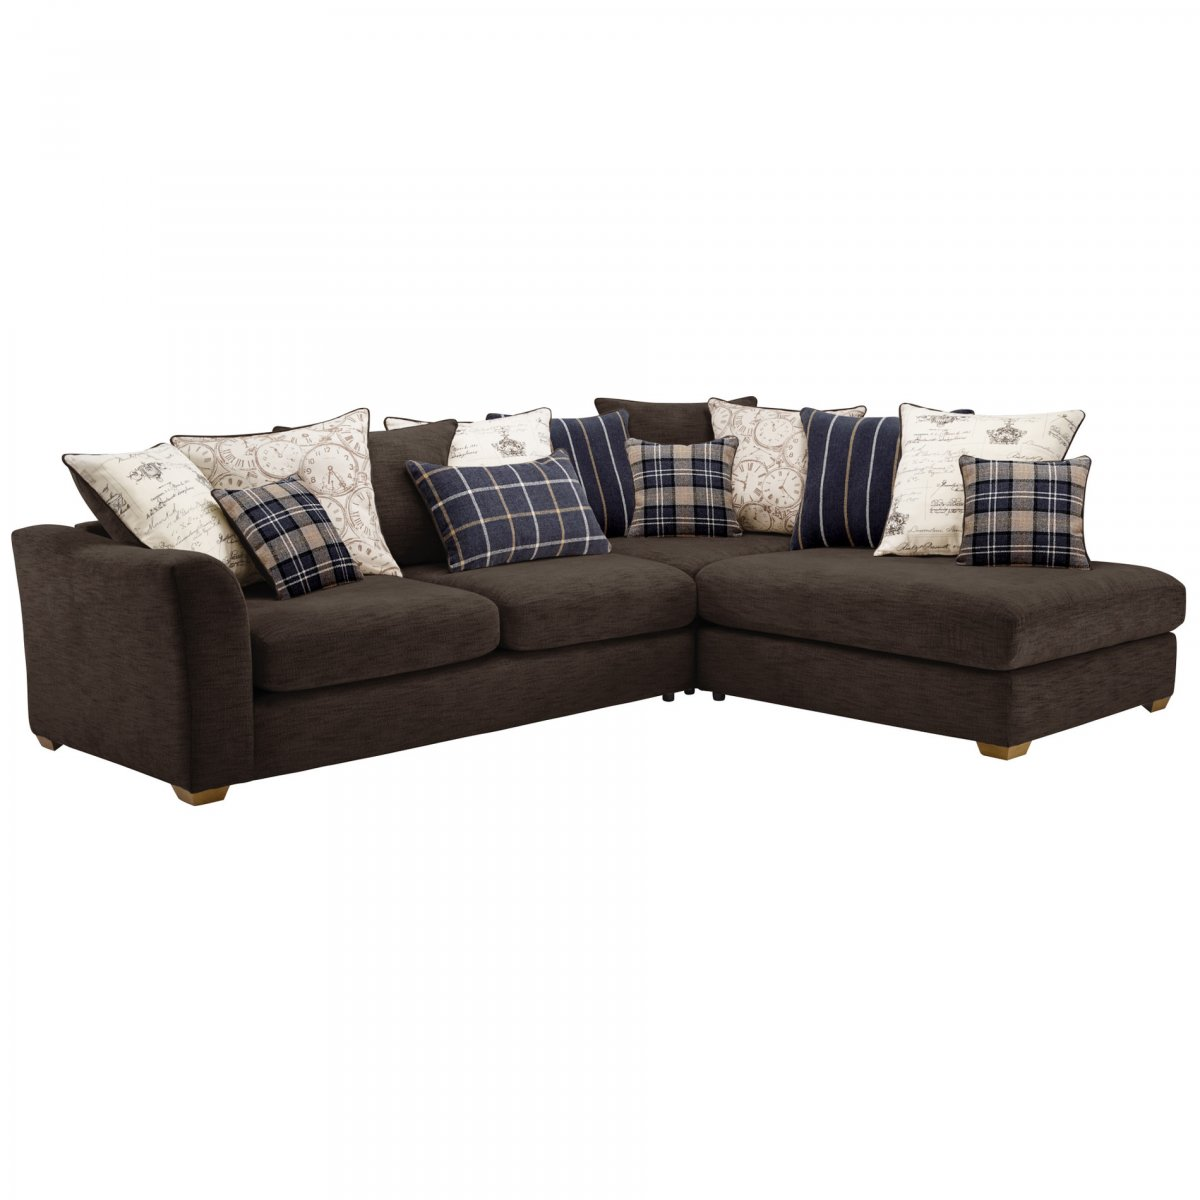 Left Hand Corner Sofas For Sale: Florence Left Hand Corner Sofa With Pillow Back In Charcoal